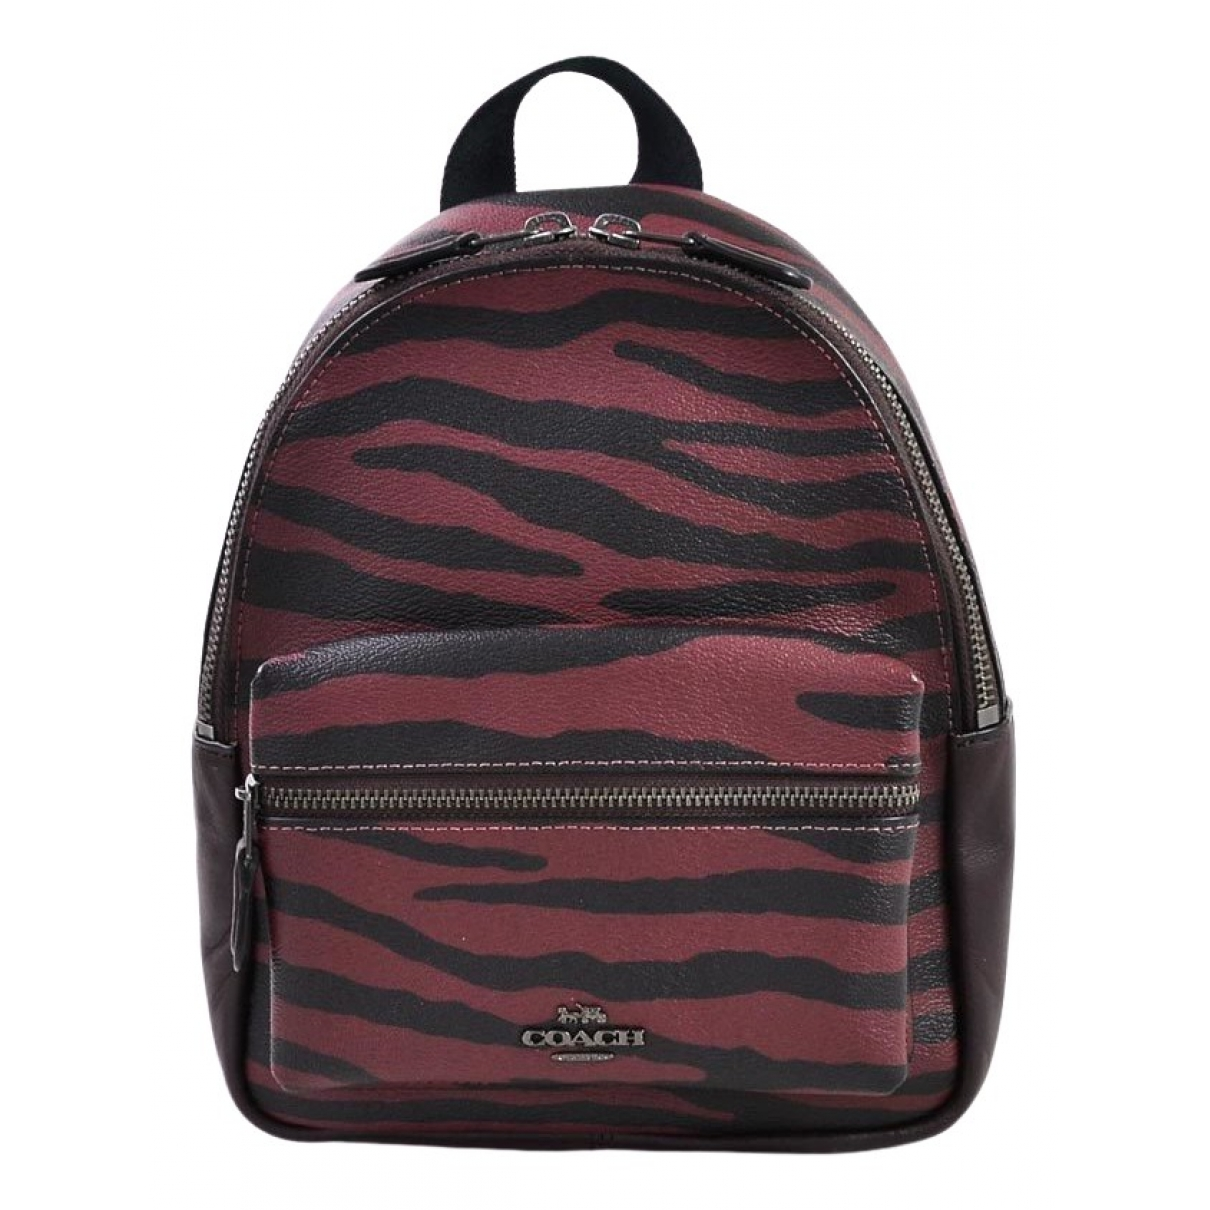 Coach \N Black Cloth backpack for Women \N